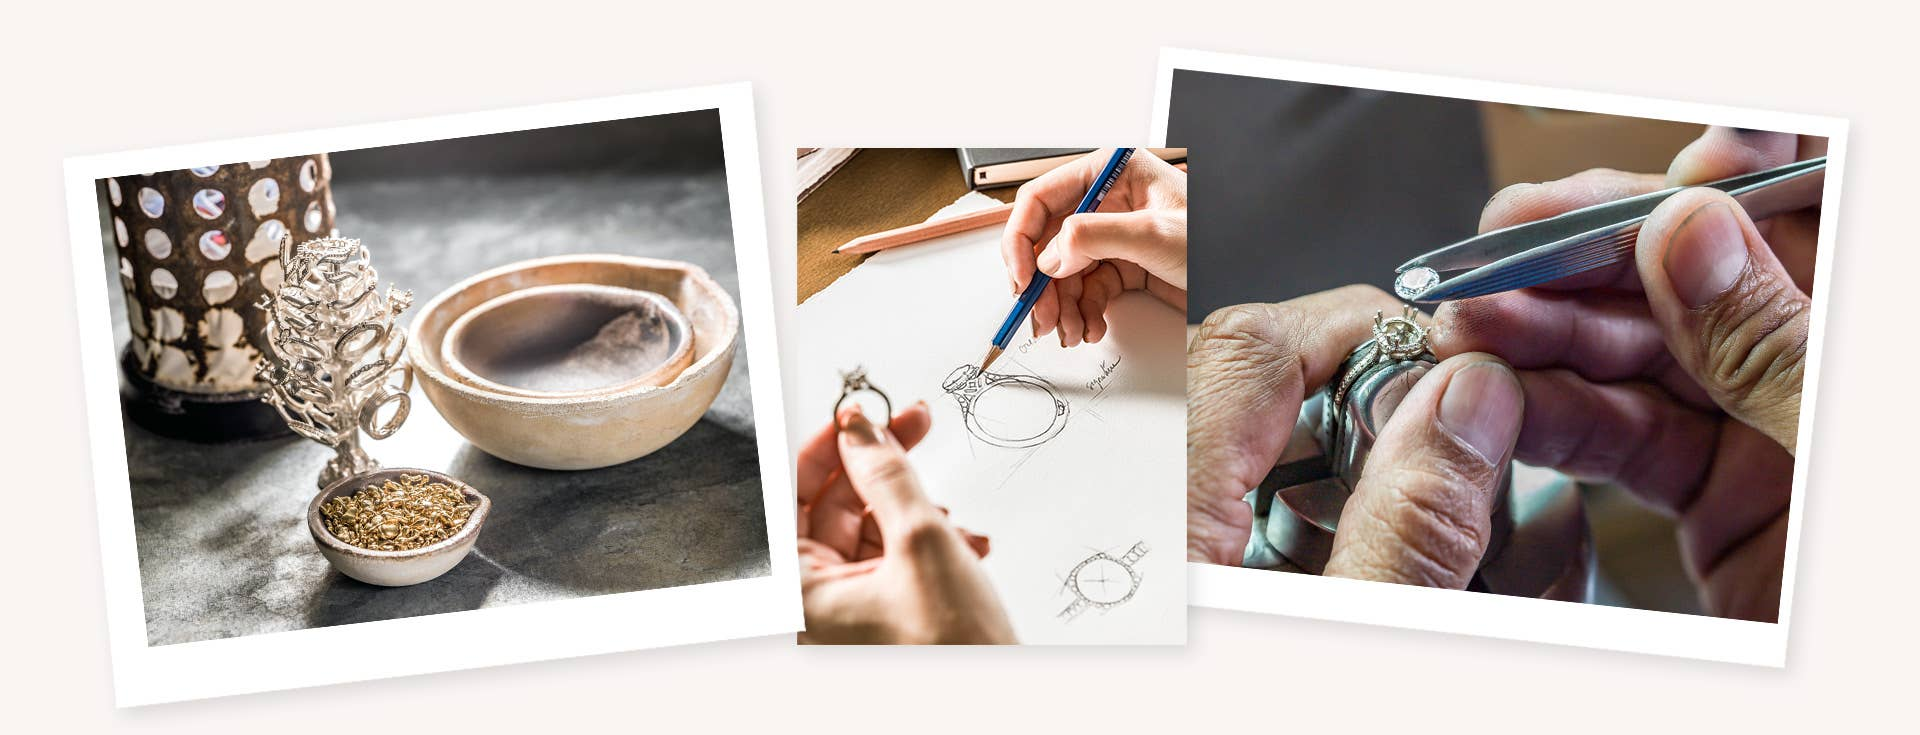 Images of Tacori Studios and handcrafted process